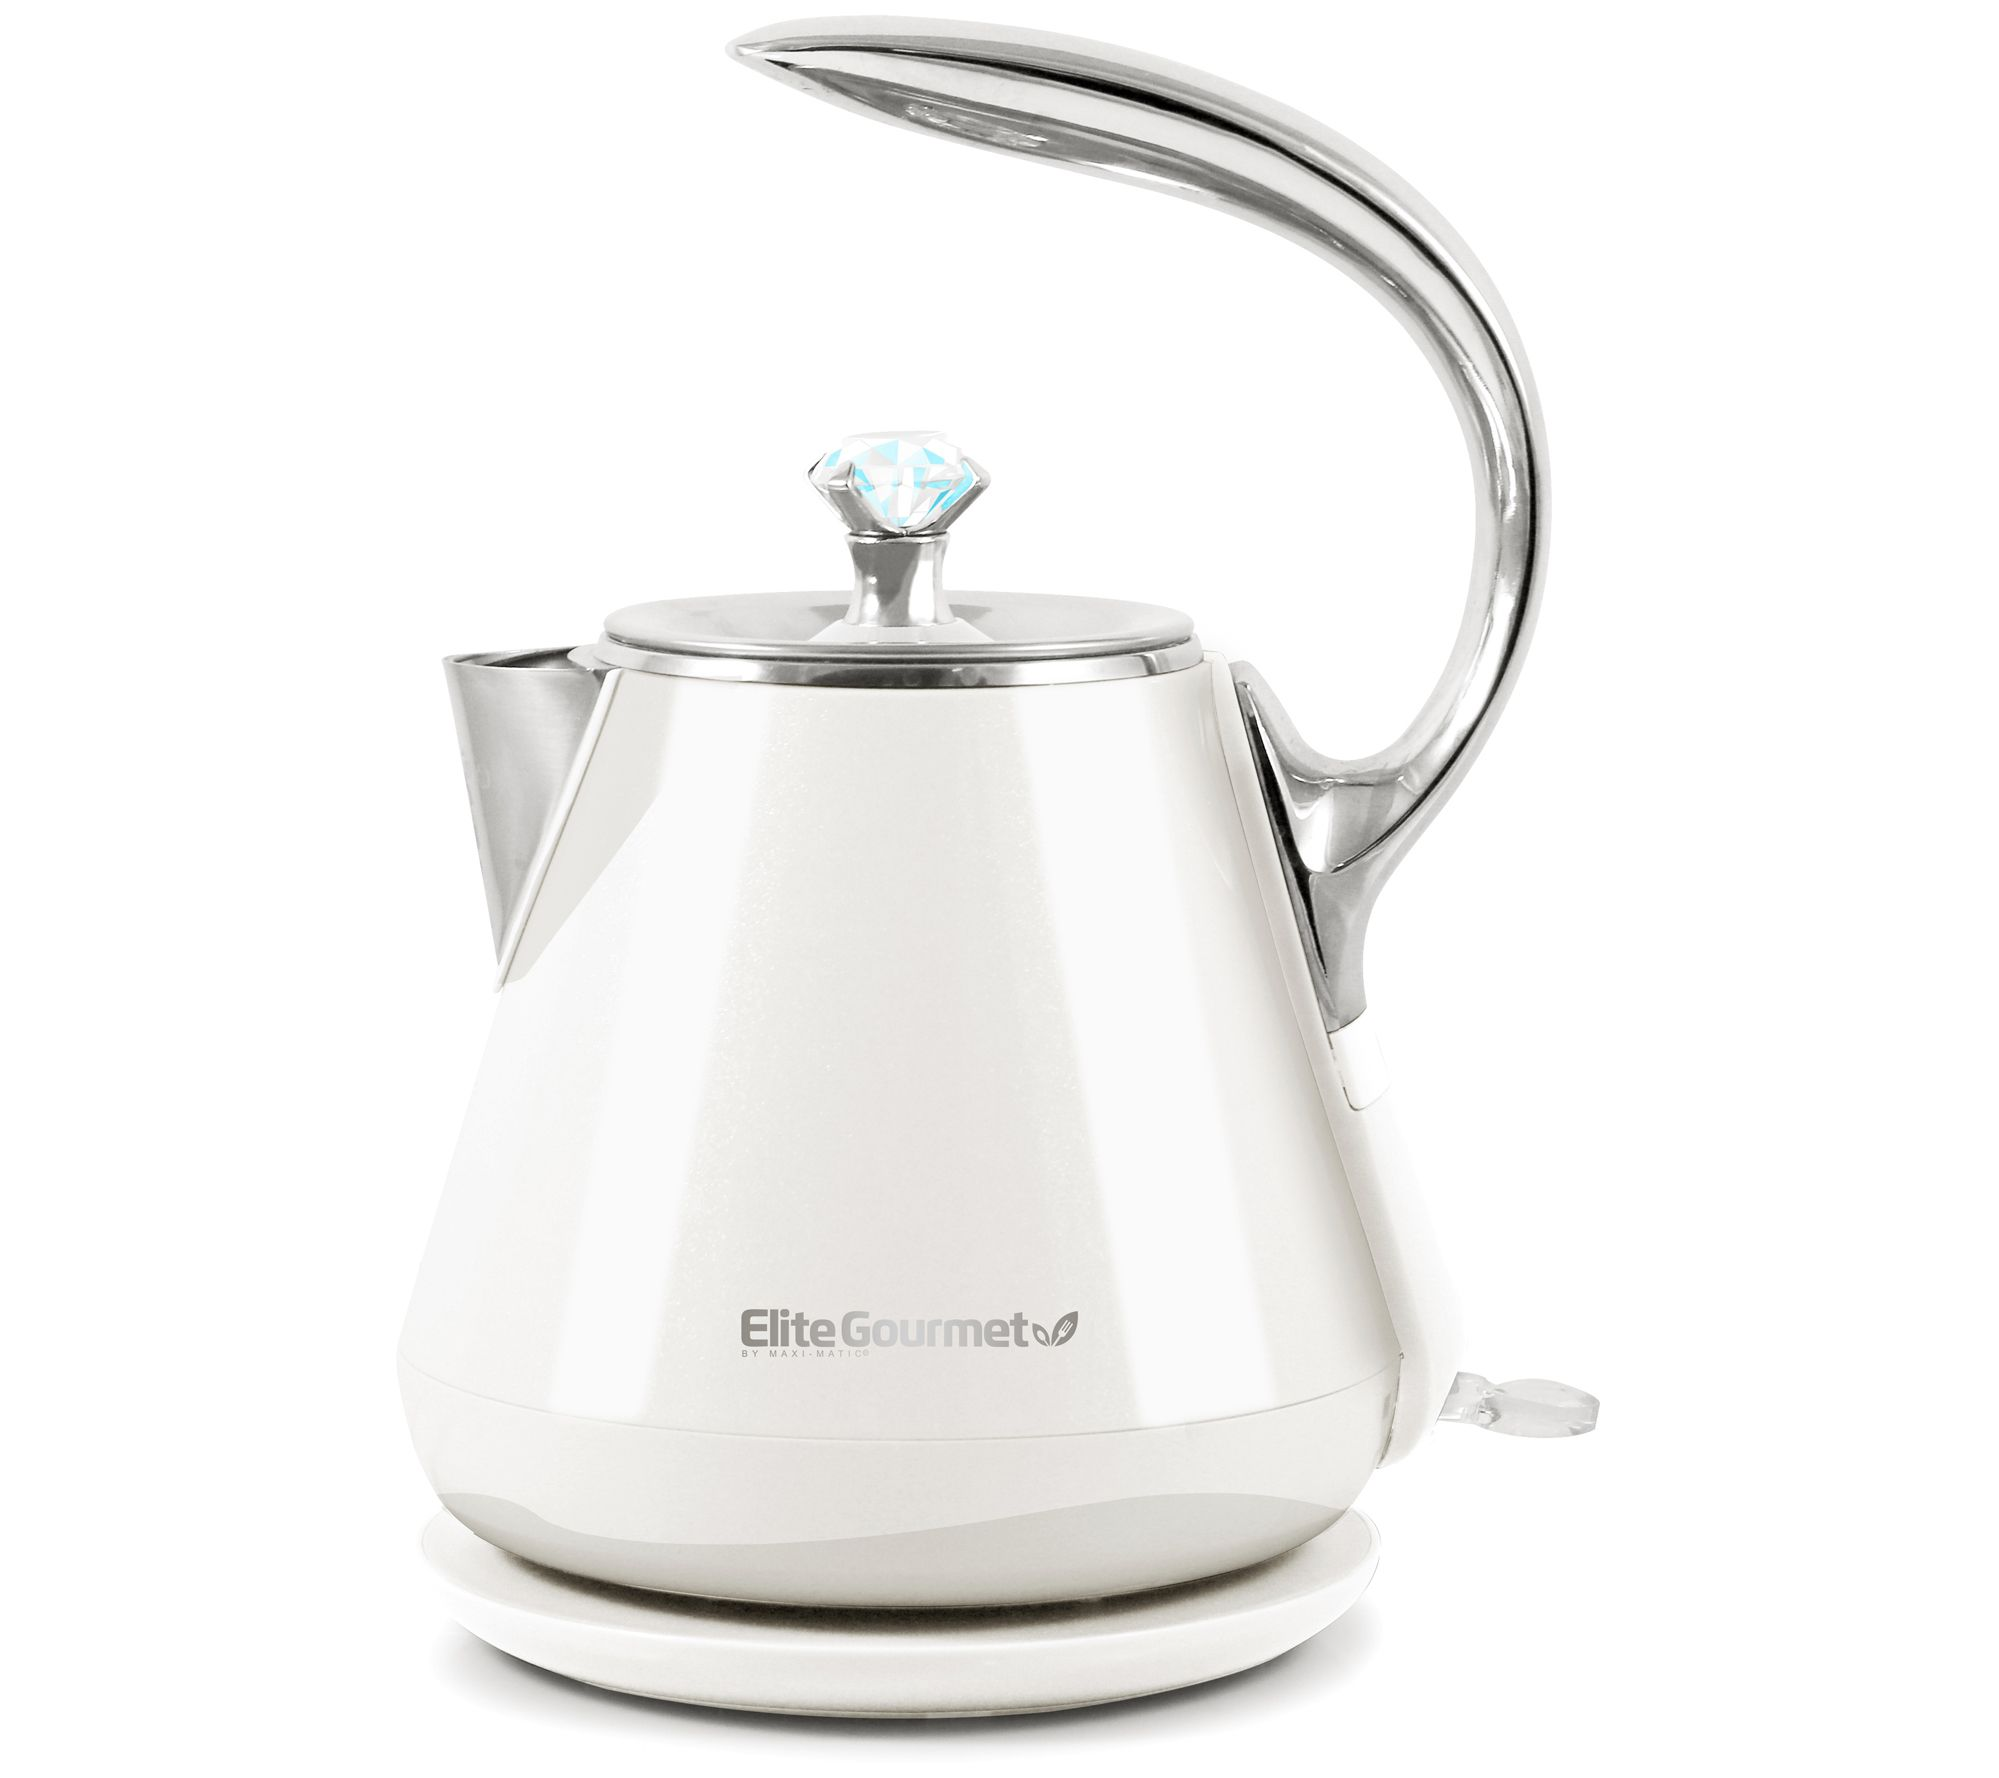 Cool-touch electric kettle